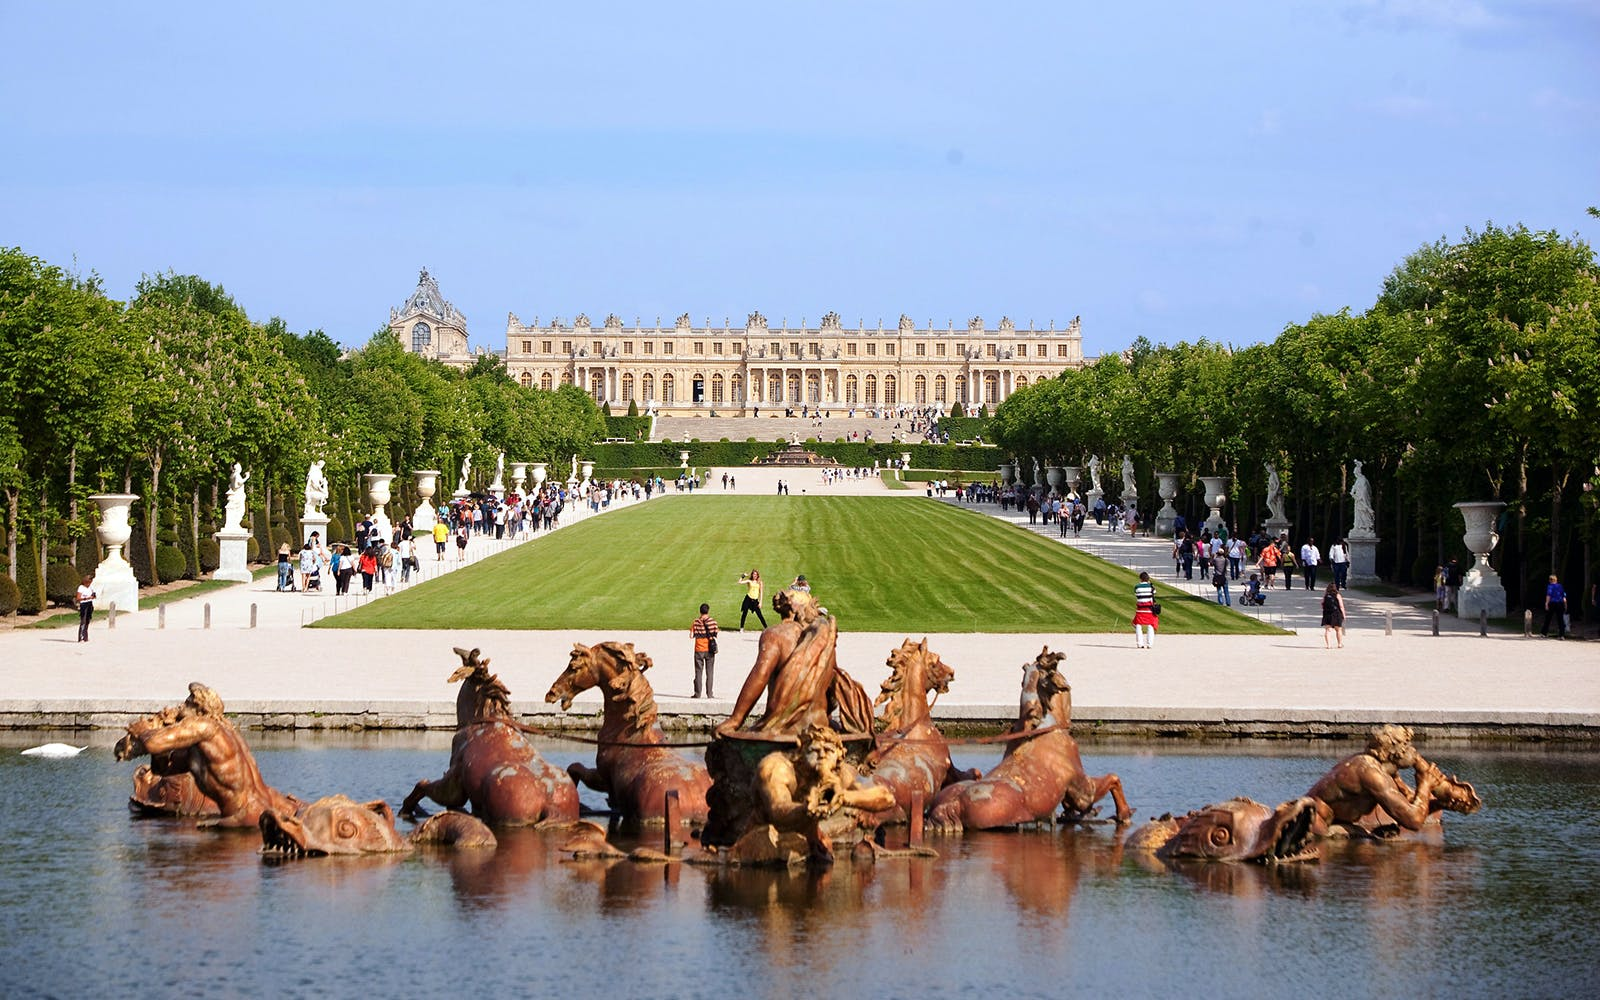 versailles all access passport entry with fountain shows and musical gardens-7